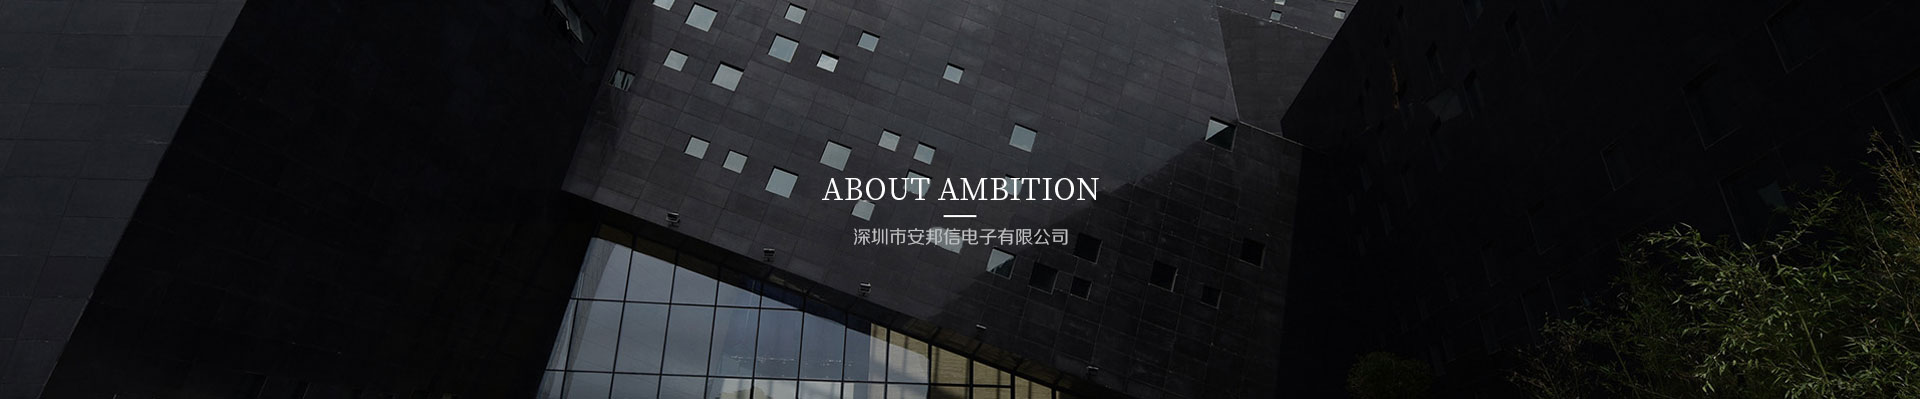 http://www.ambition.com.cn/data/images/slide/20190924161912_506.jpg